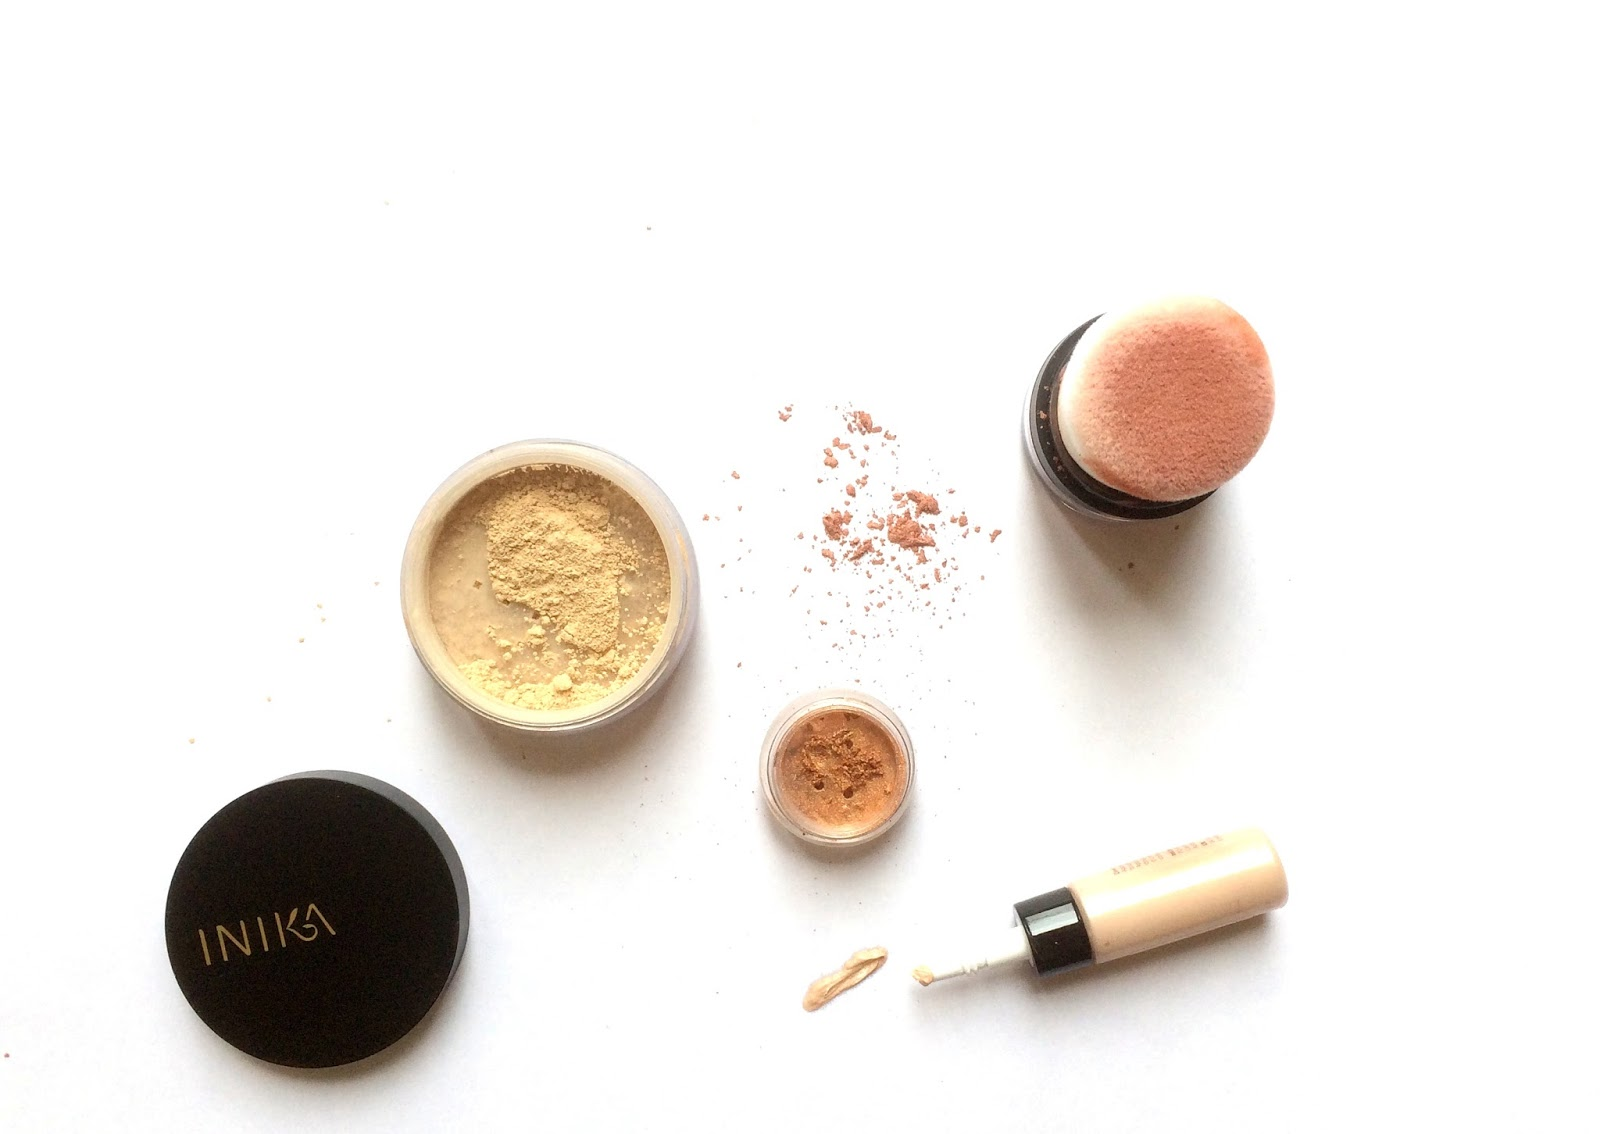 inika cosmetics review